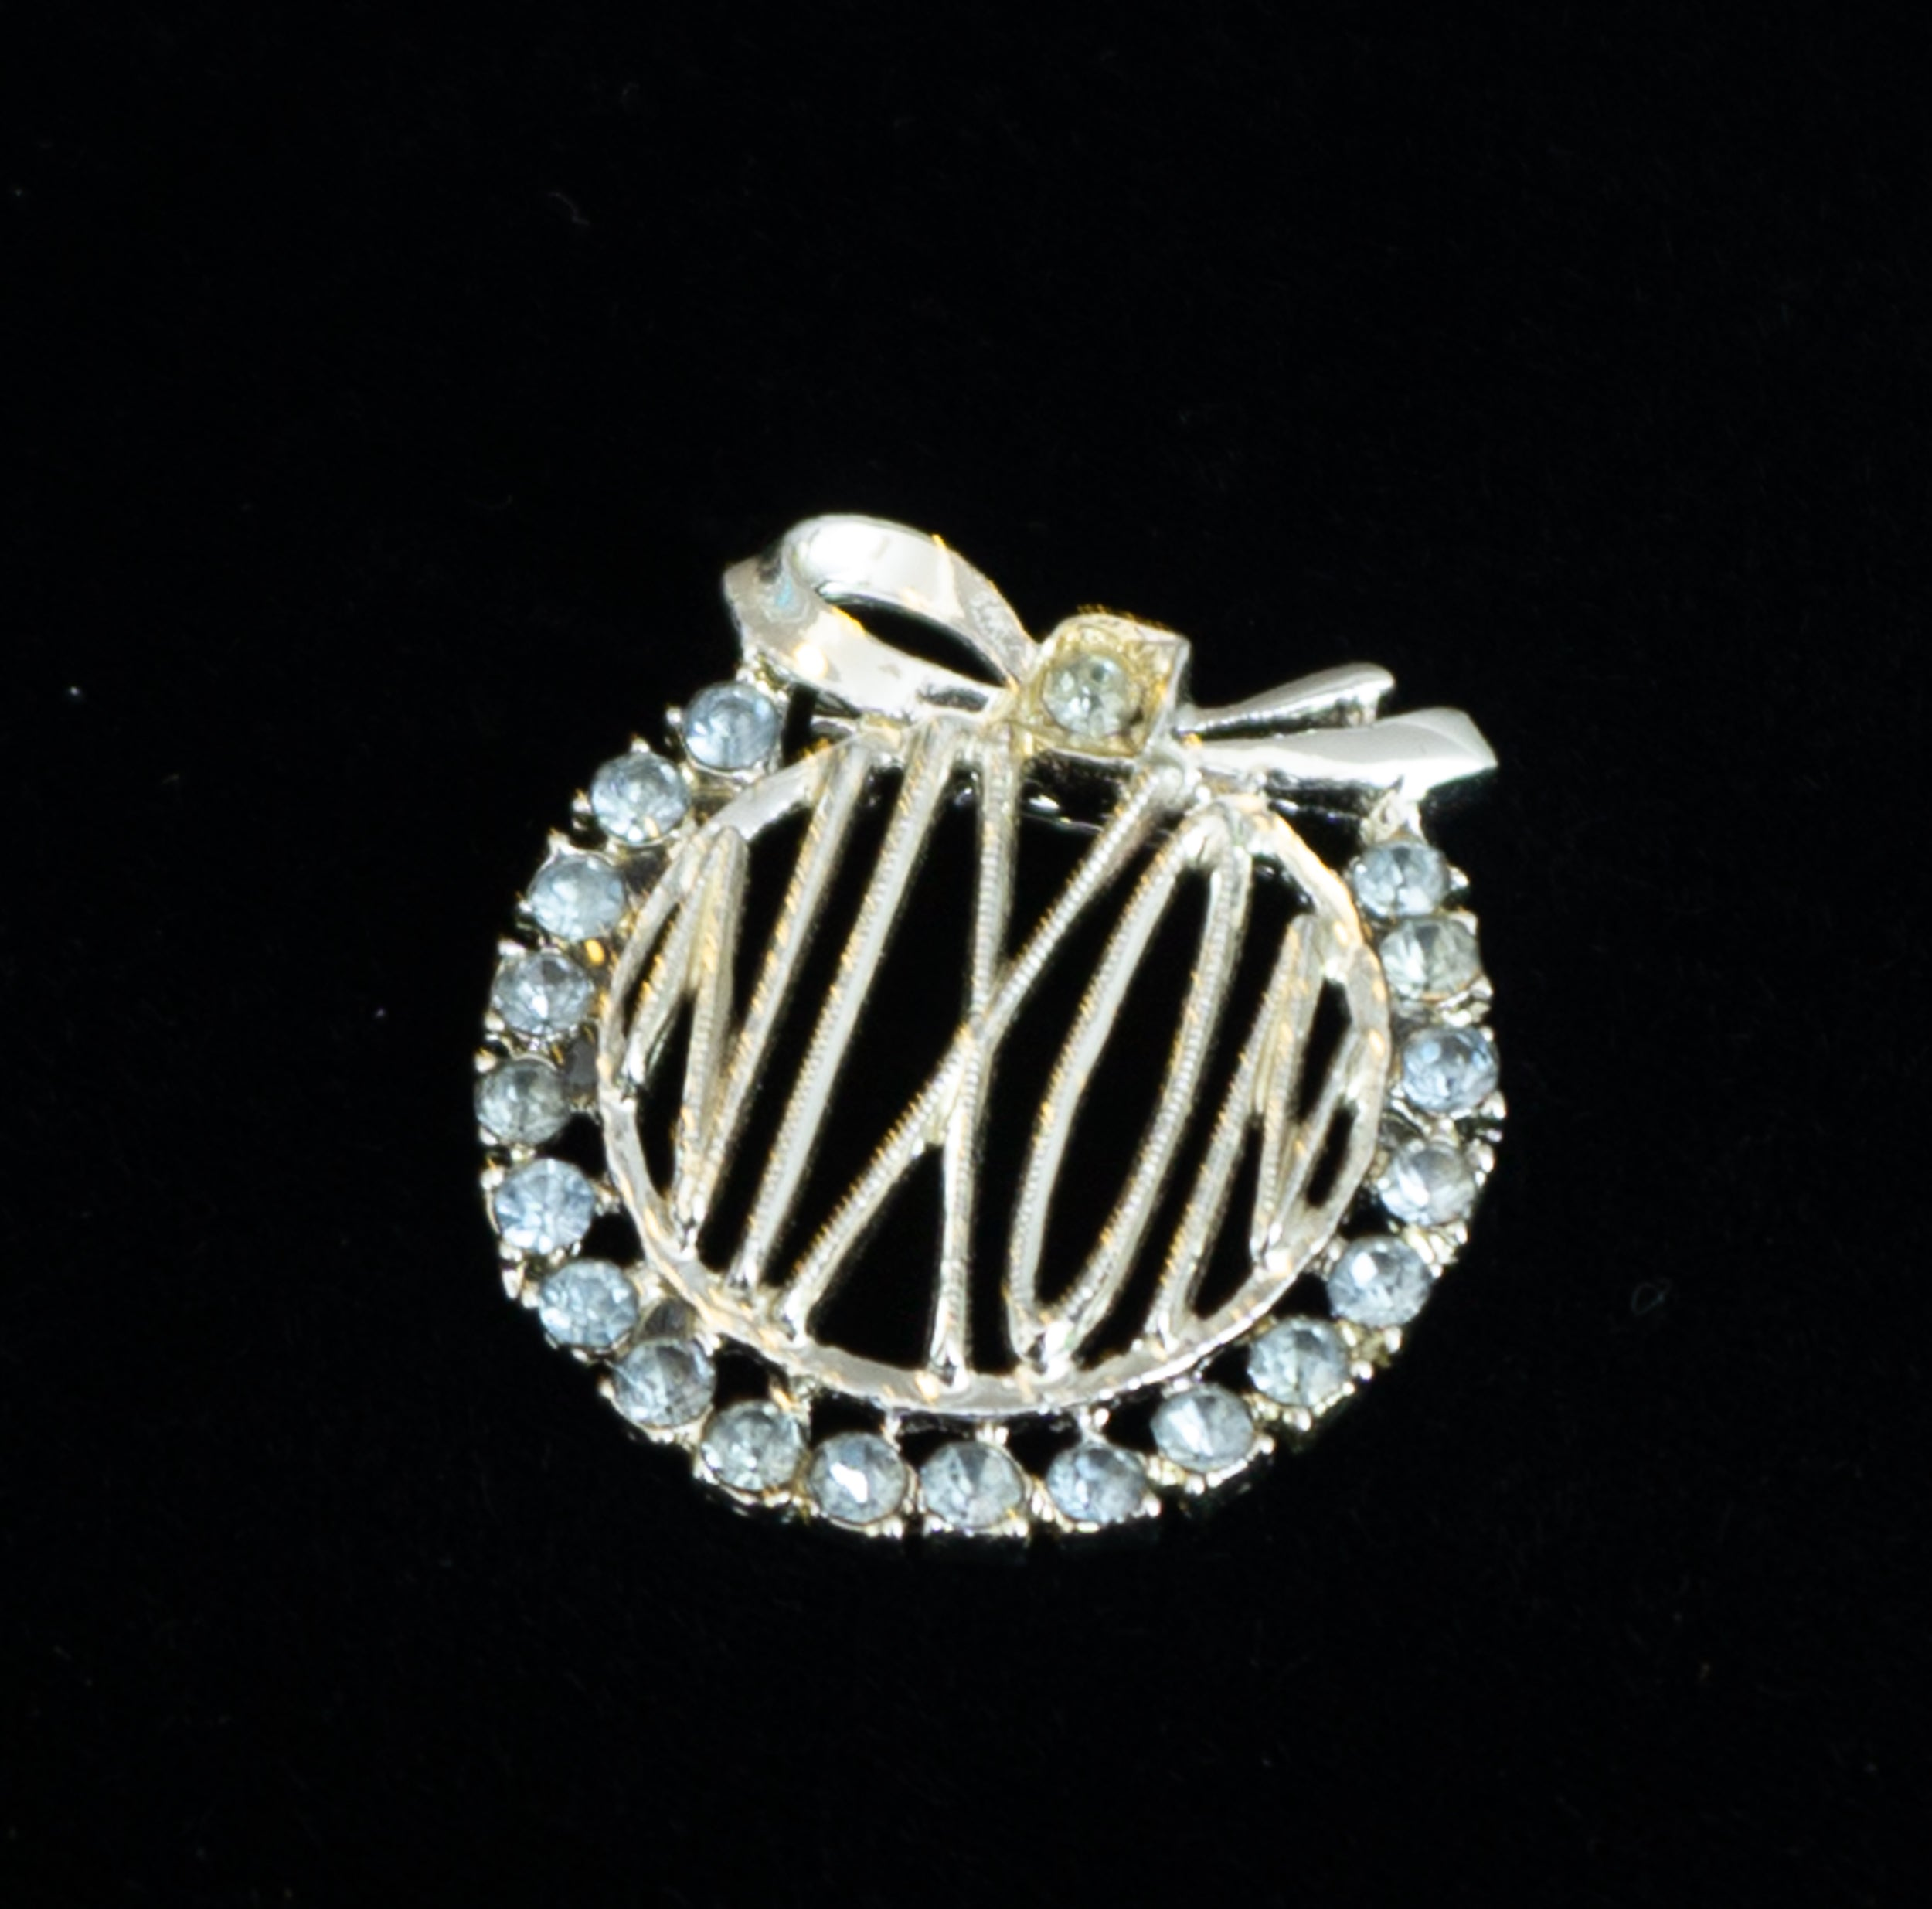 Vintage Richard Nixon Brooch with Bow and Light Blue Rhinestones Political Memorabilia